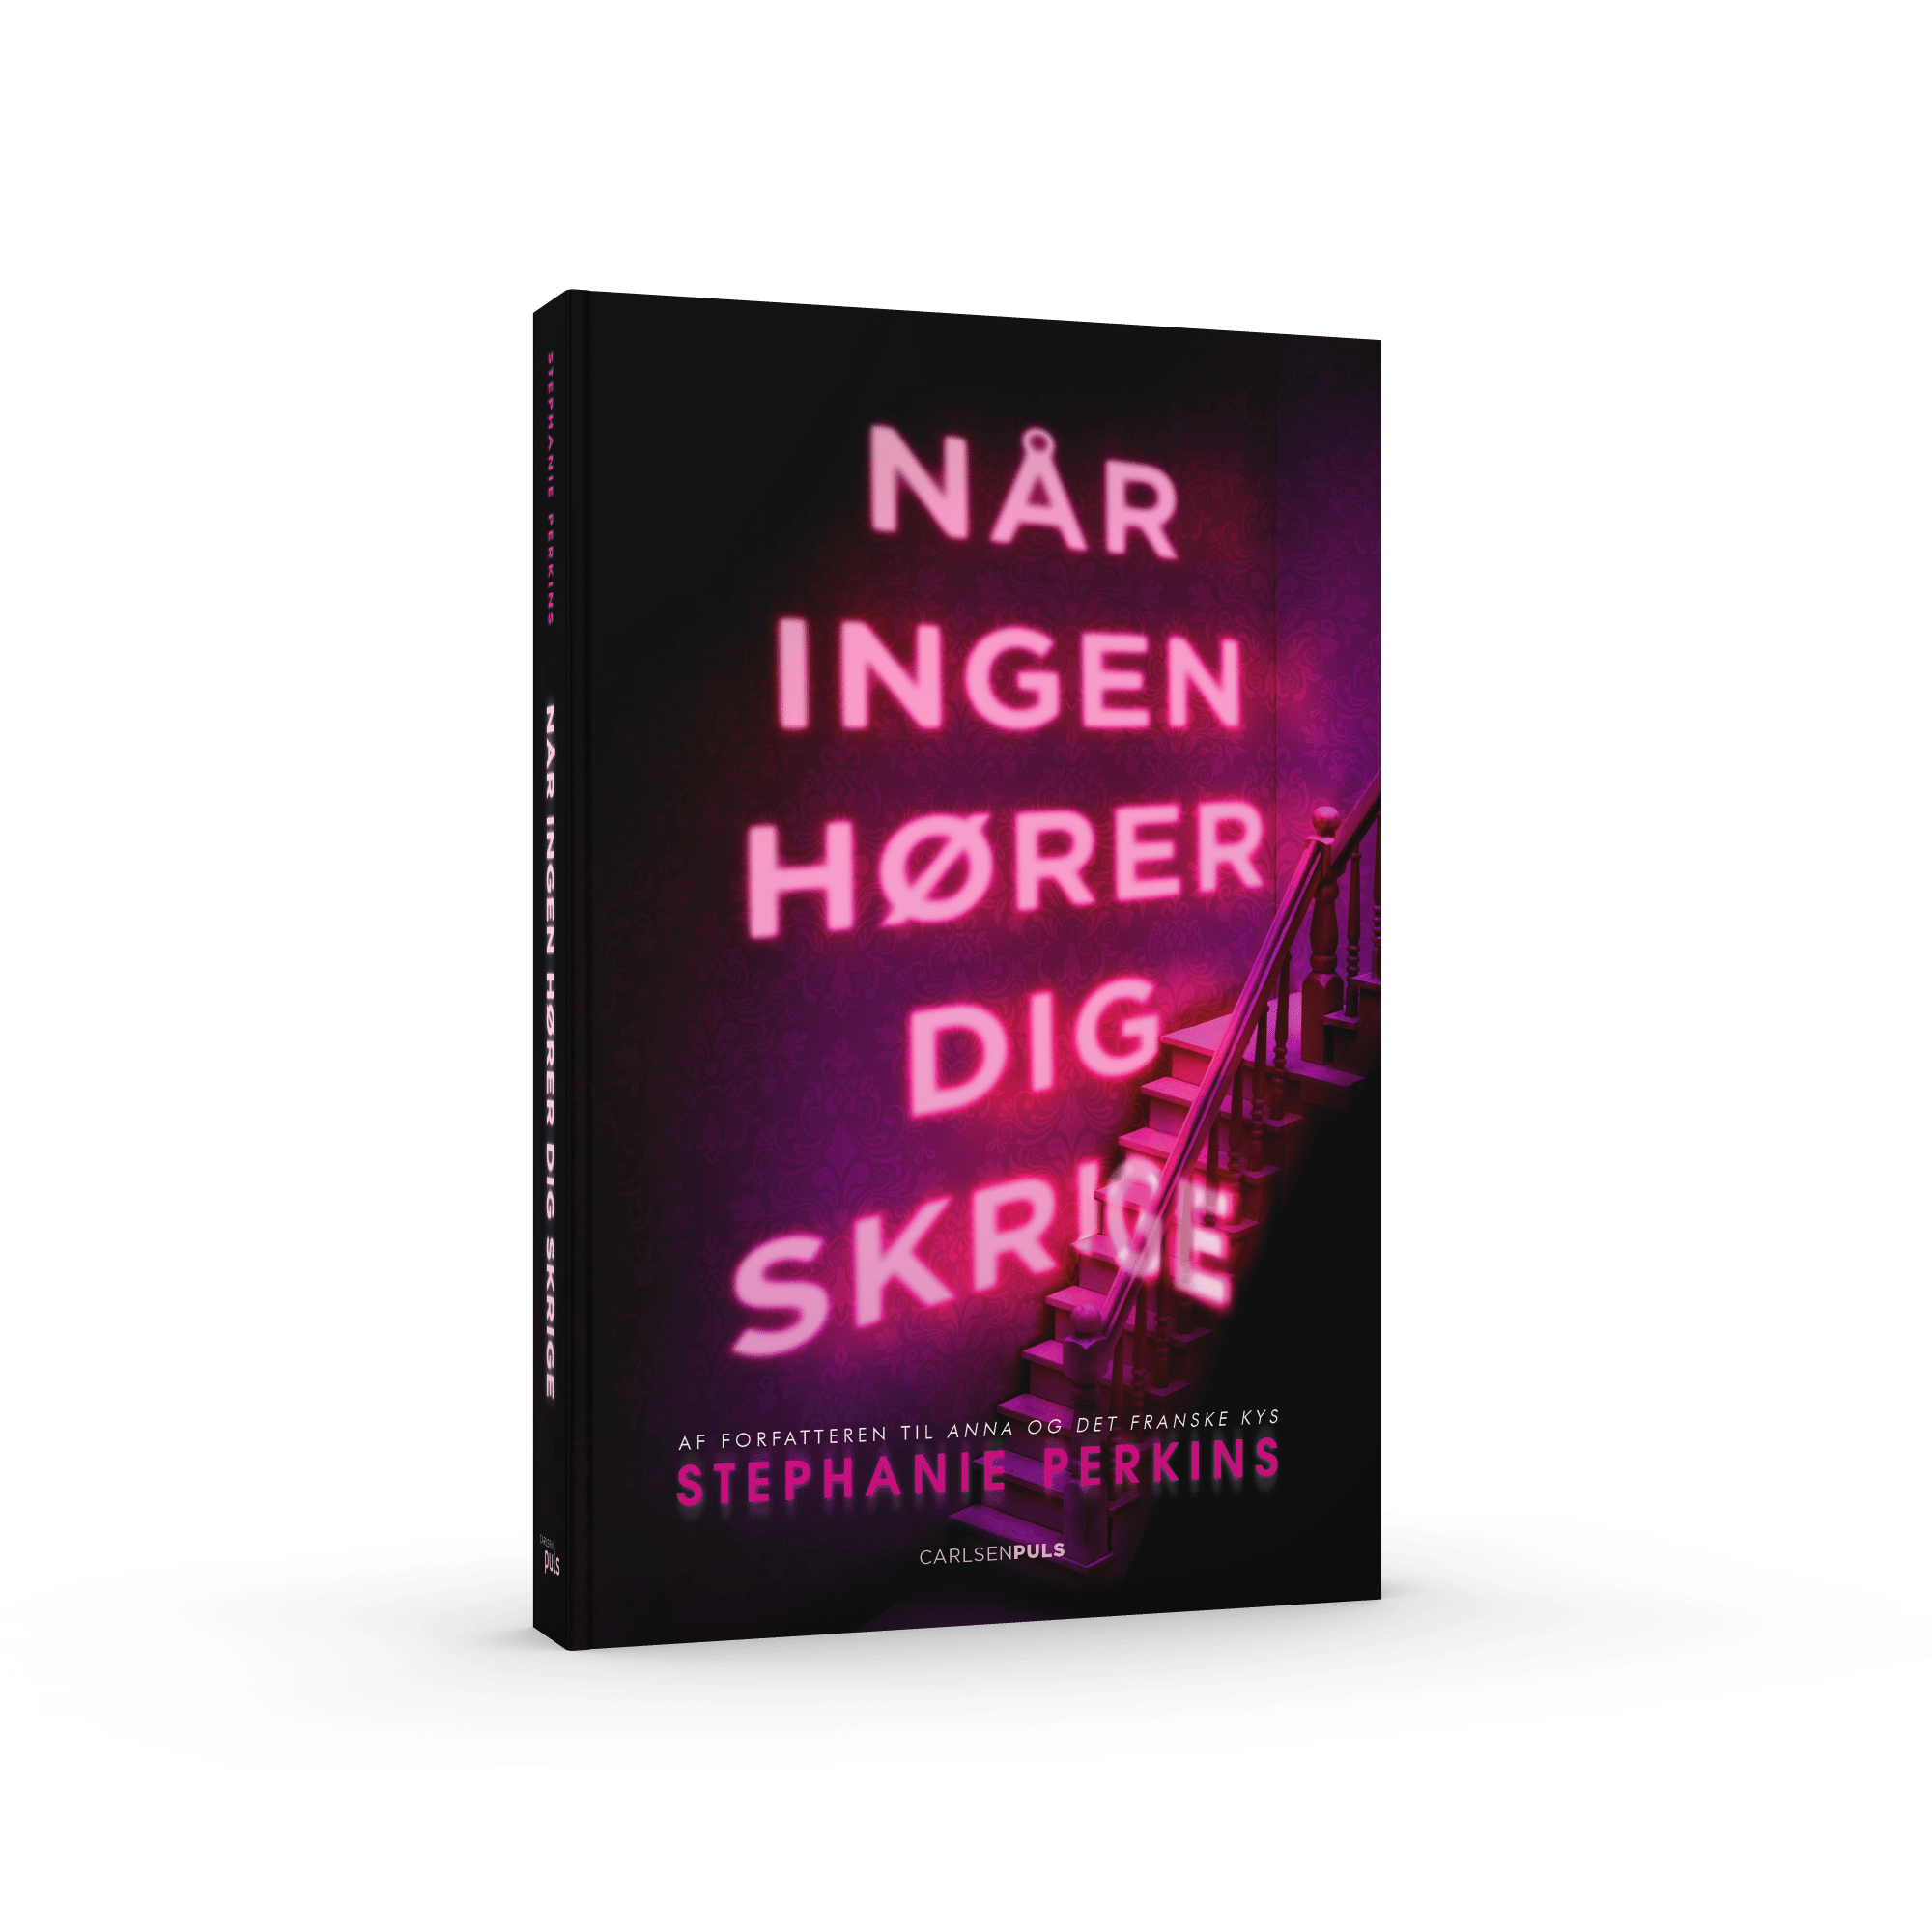 Når ingen hører dig skrige, stephanie perkins, anna og det franske kys, there is someone inside your house